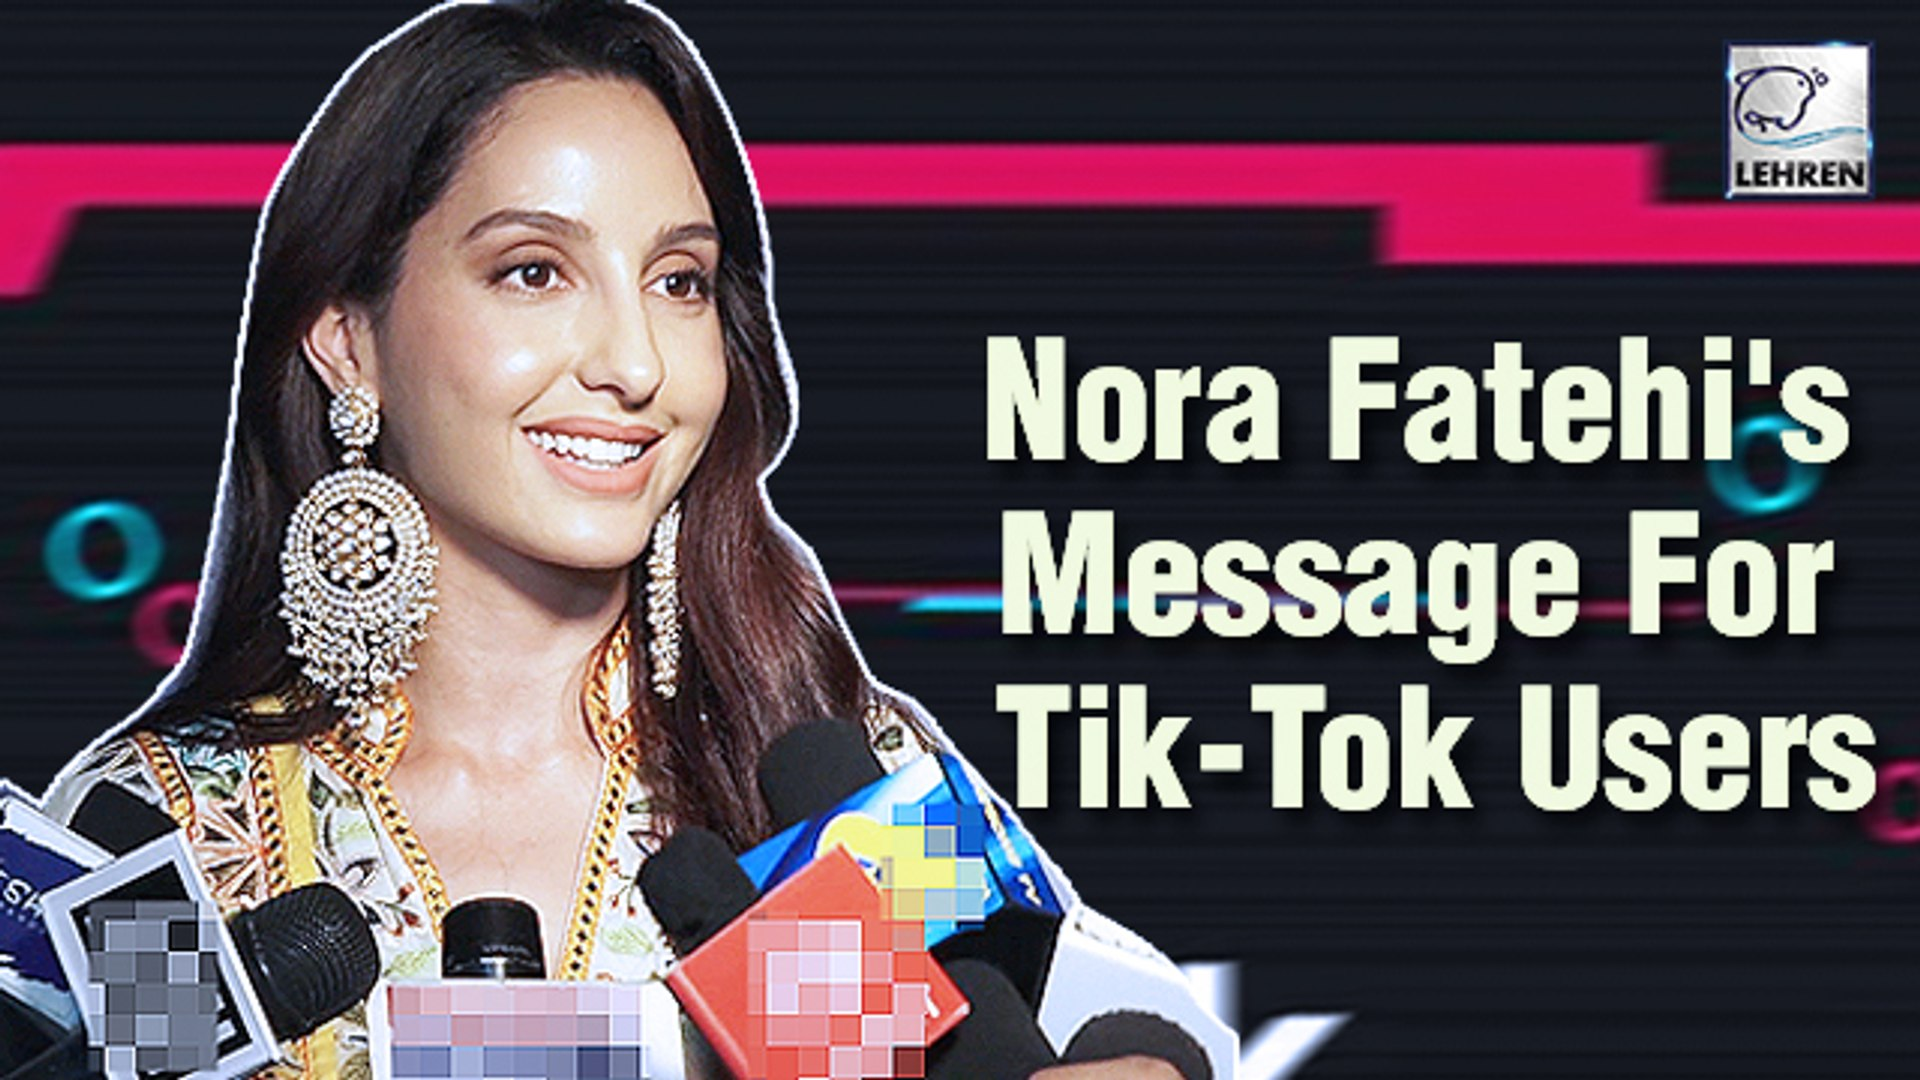 Nora Fatehi Has A Special Message For Tik-Tok Users